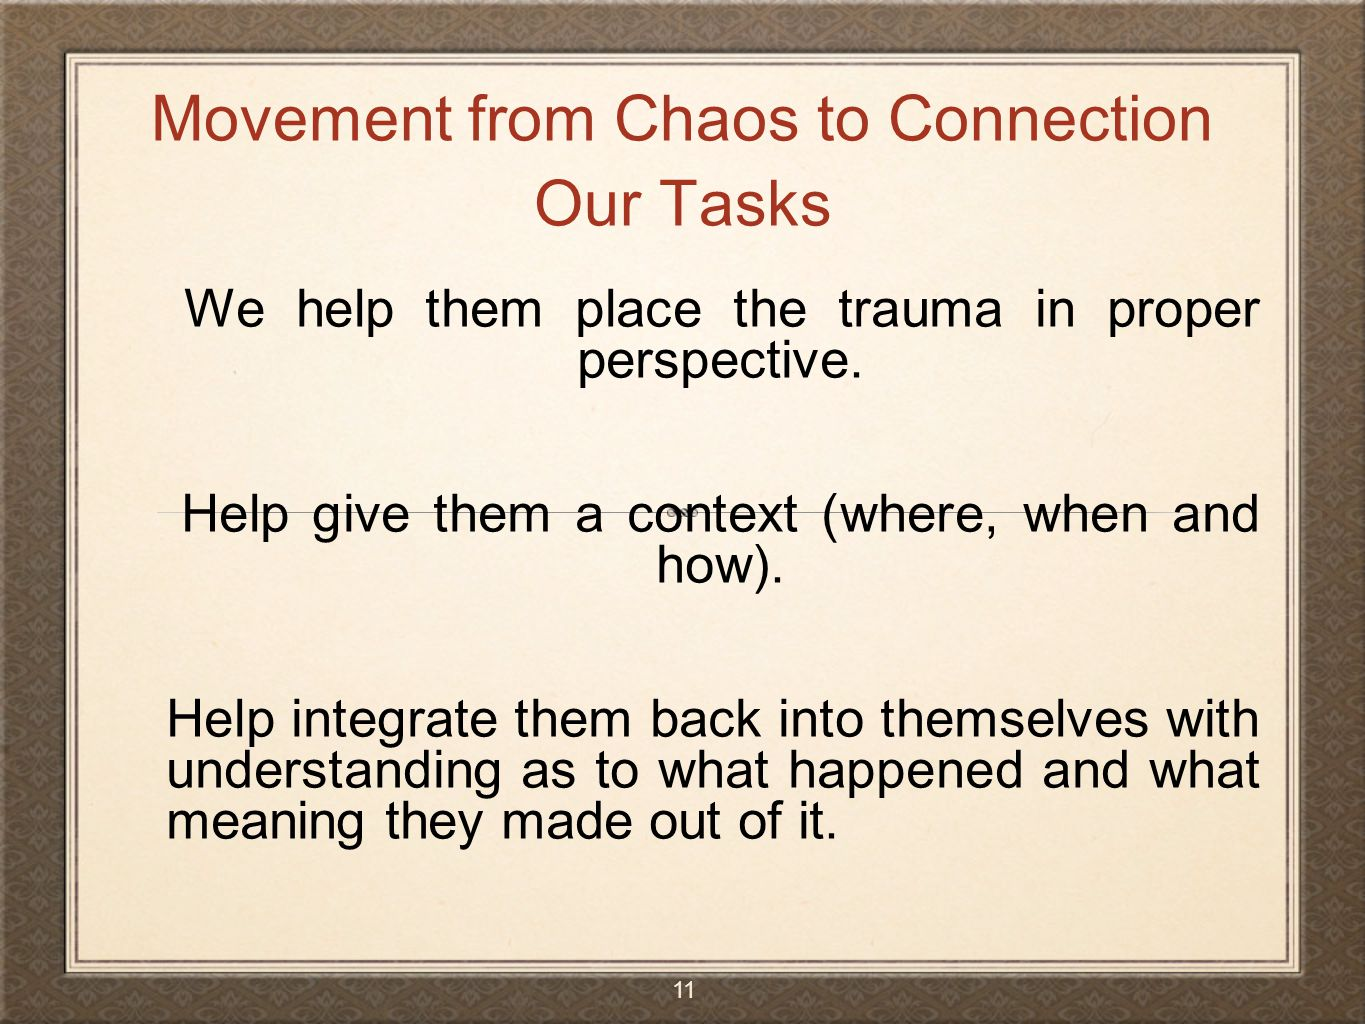 We help them place the trauma in proper perspective. Help give them a context (where, when and how). Help integrate them back into themselves with und